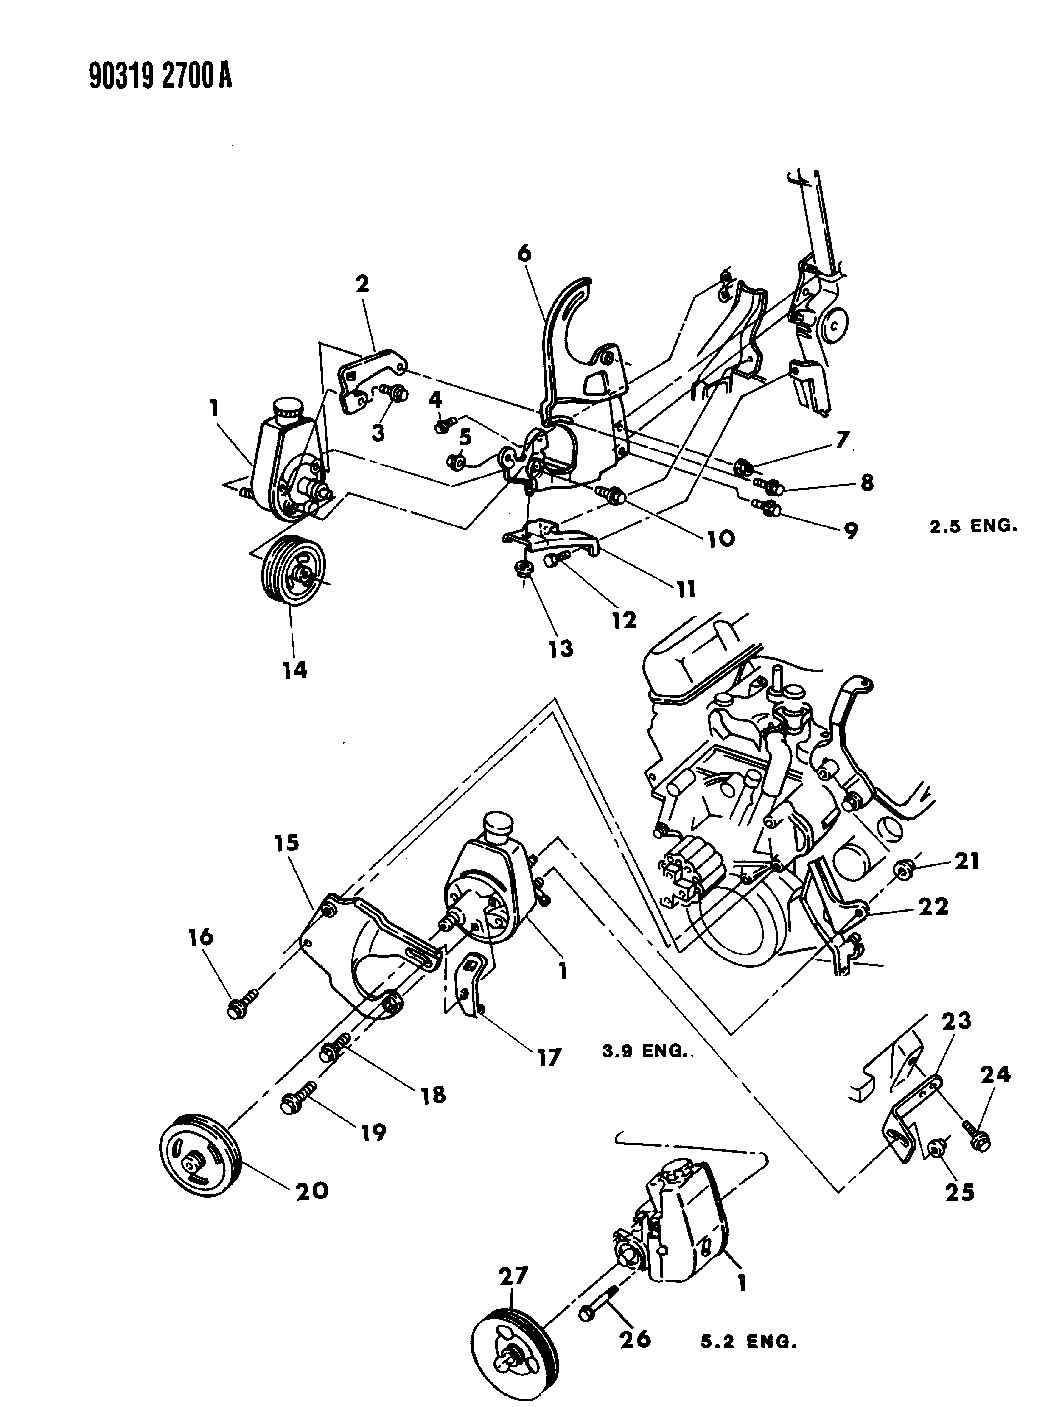 1990 Dodge Dakota Steering Diagram Trusted Wiring Diagrams Intrepid Ac Get Free Image About Similiar Keywords 2005